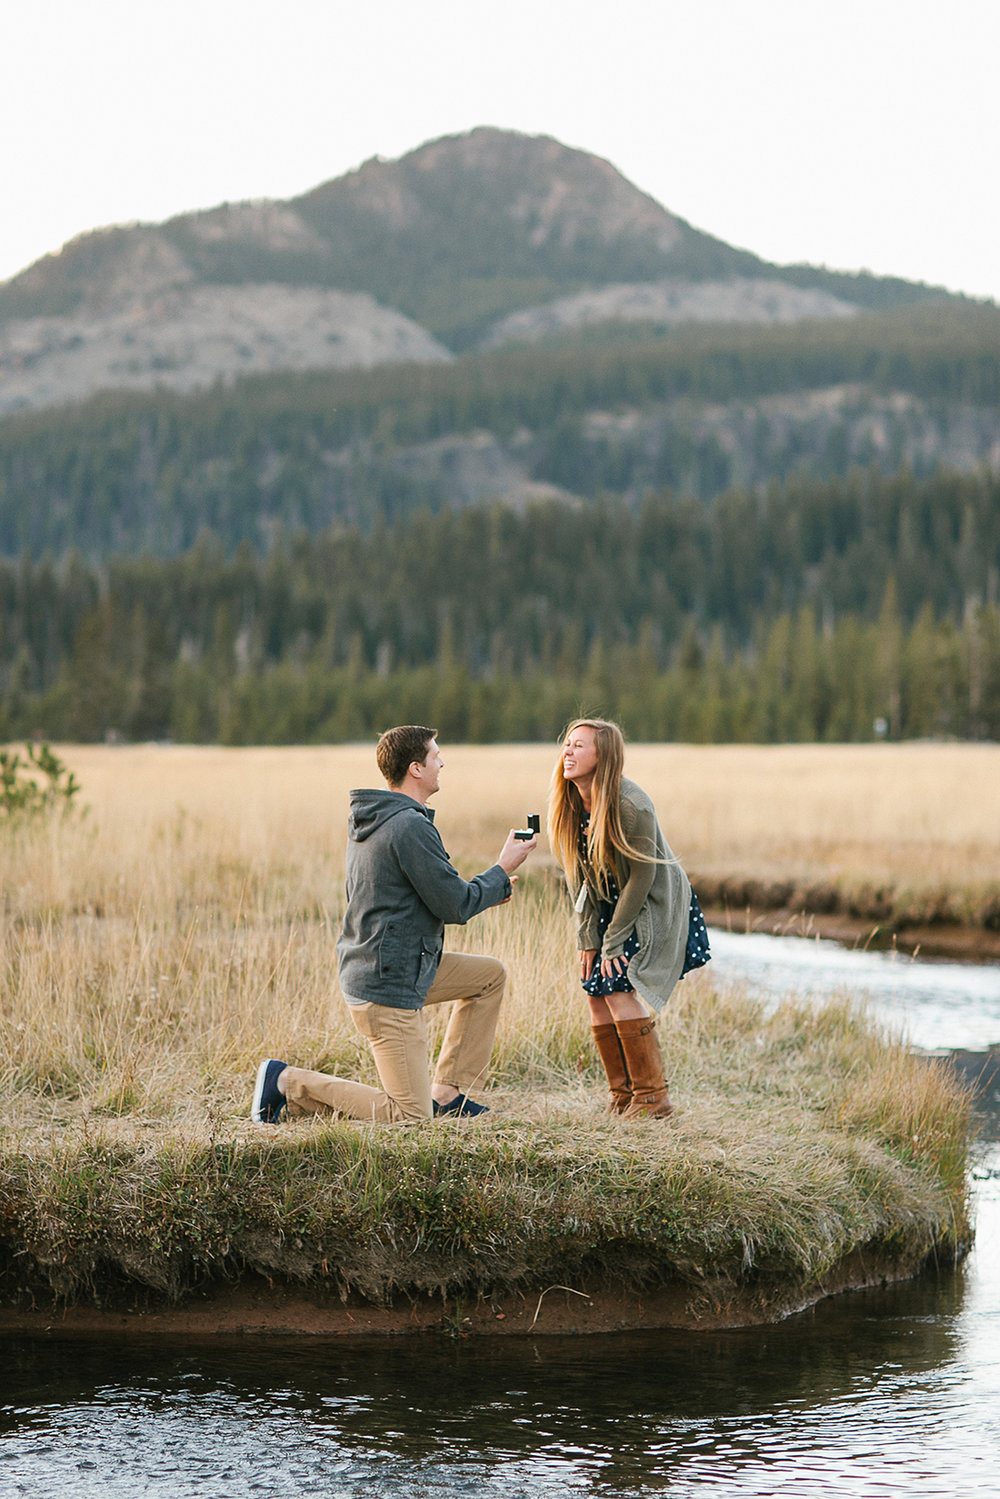 sparks_lake_bend_oregon_engagement_photo-03.JPG